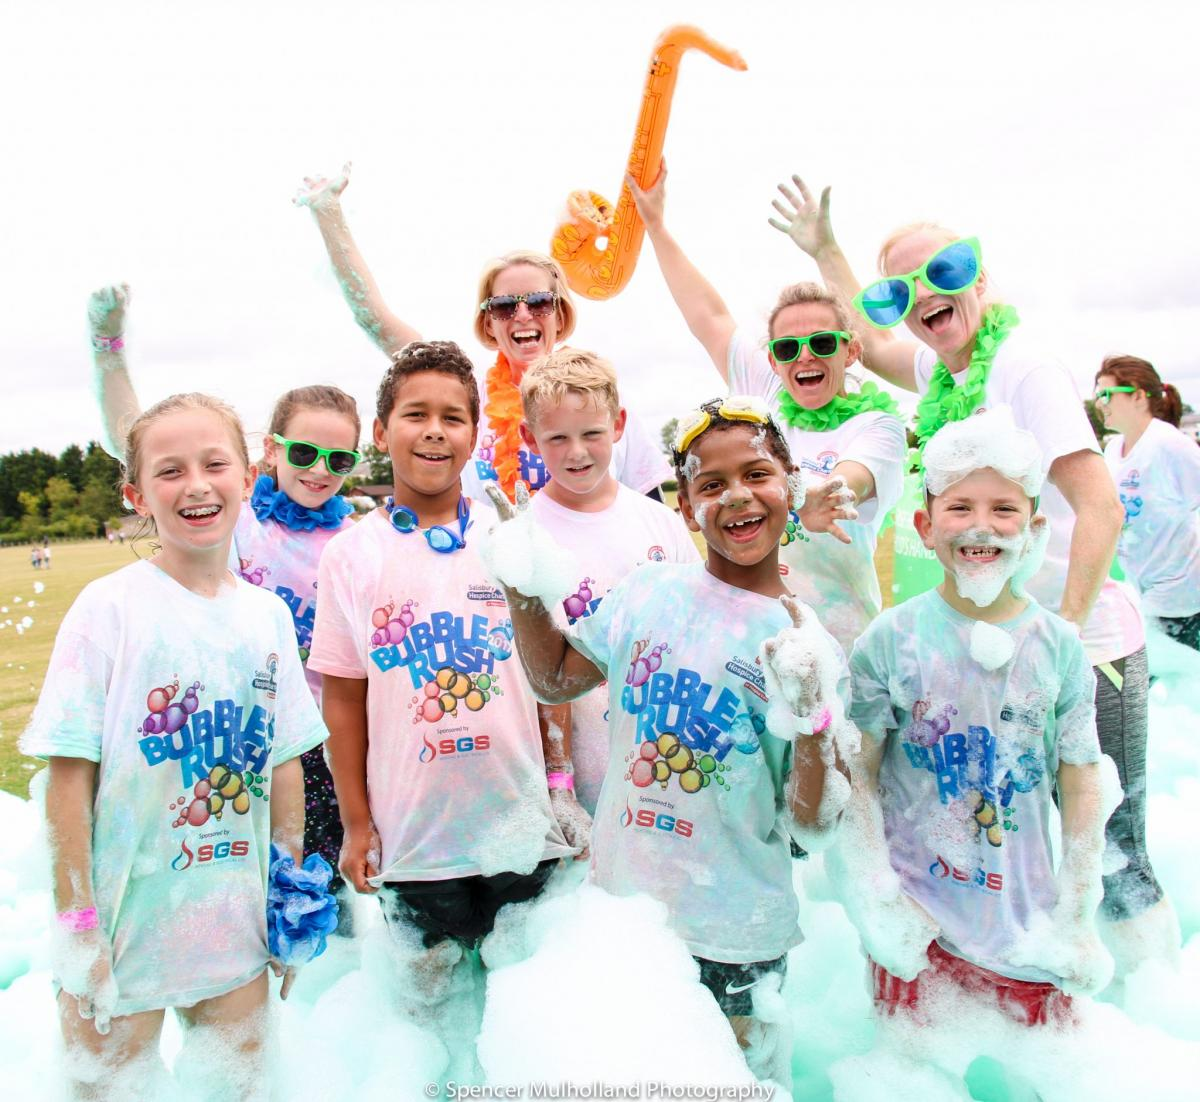 Salisbury Bubble Rush has raised £43,000 and Counting